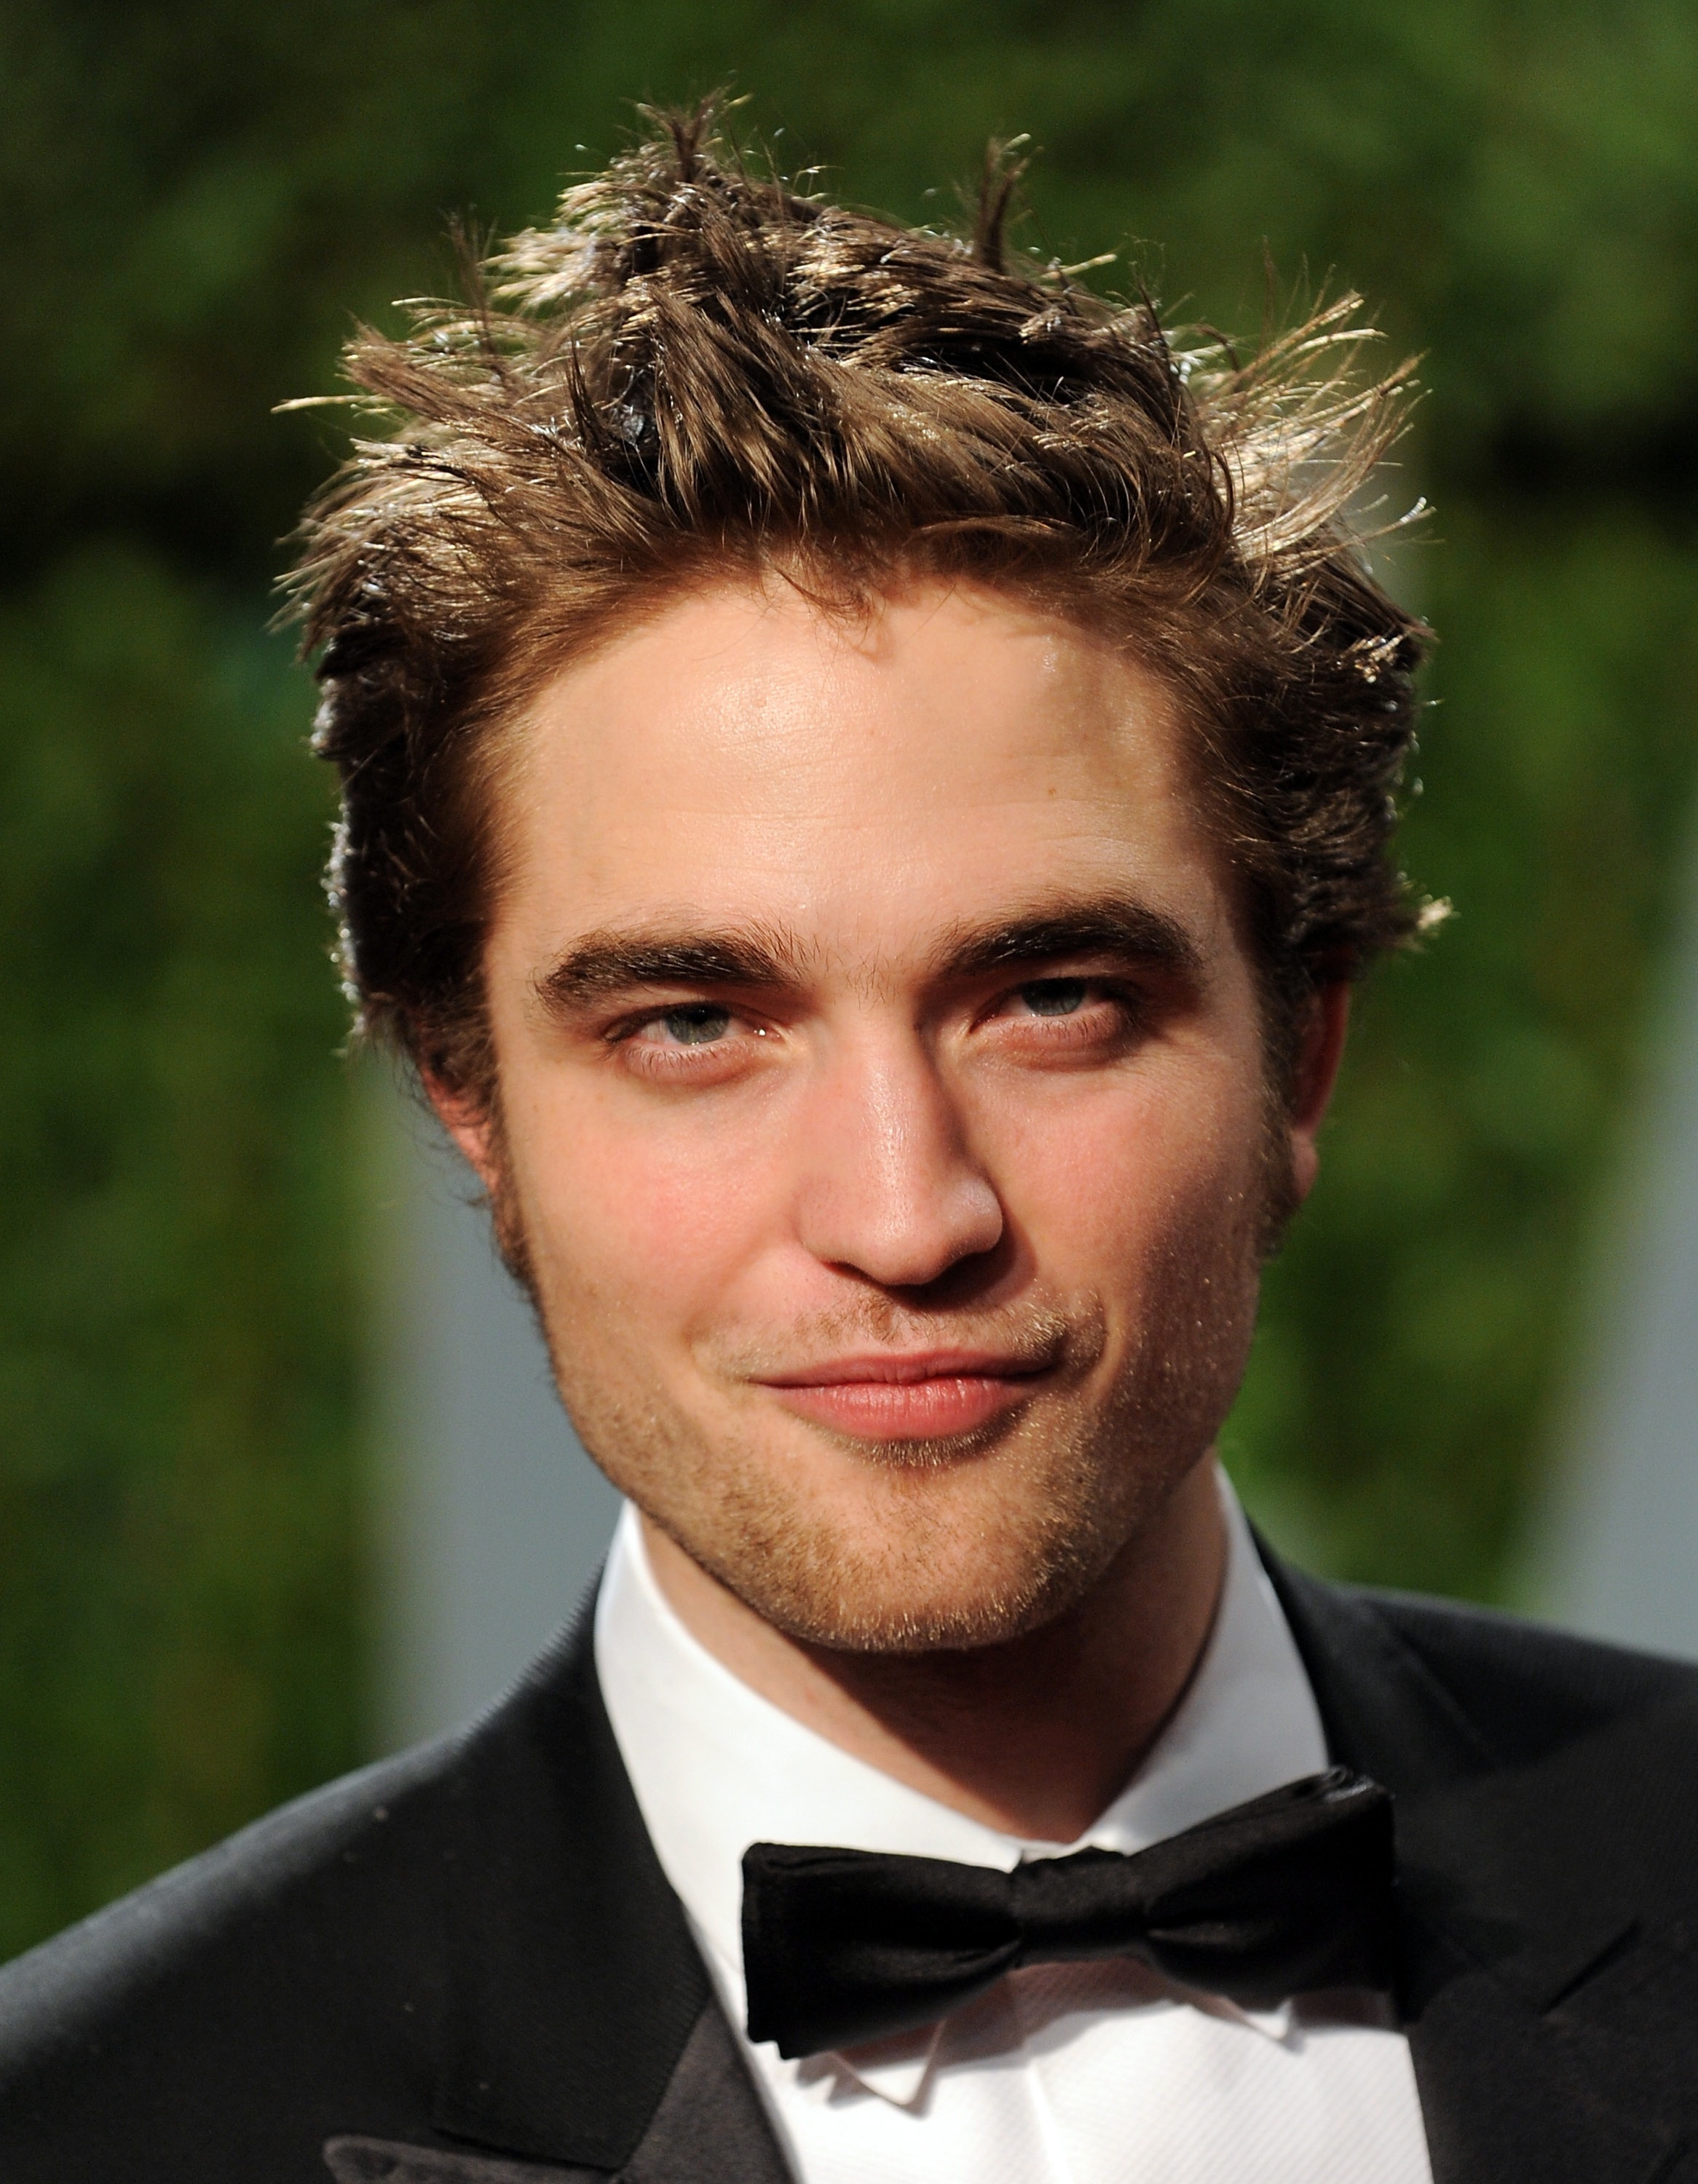 090222060775 Robert Pattinson